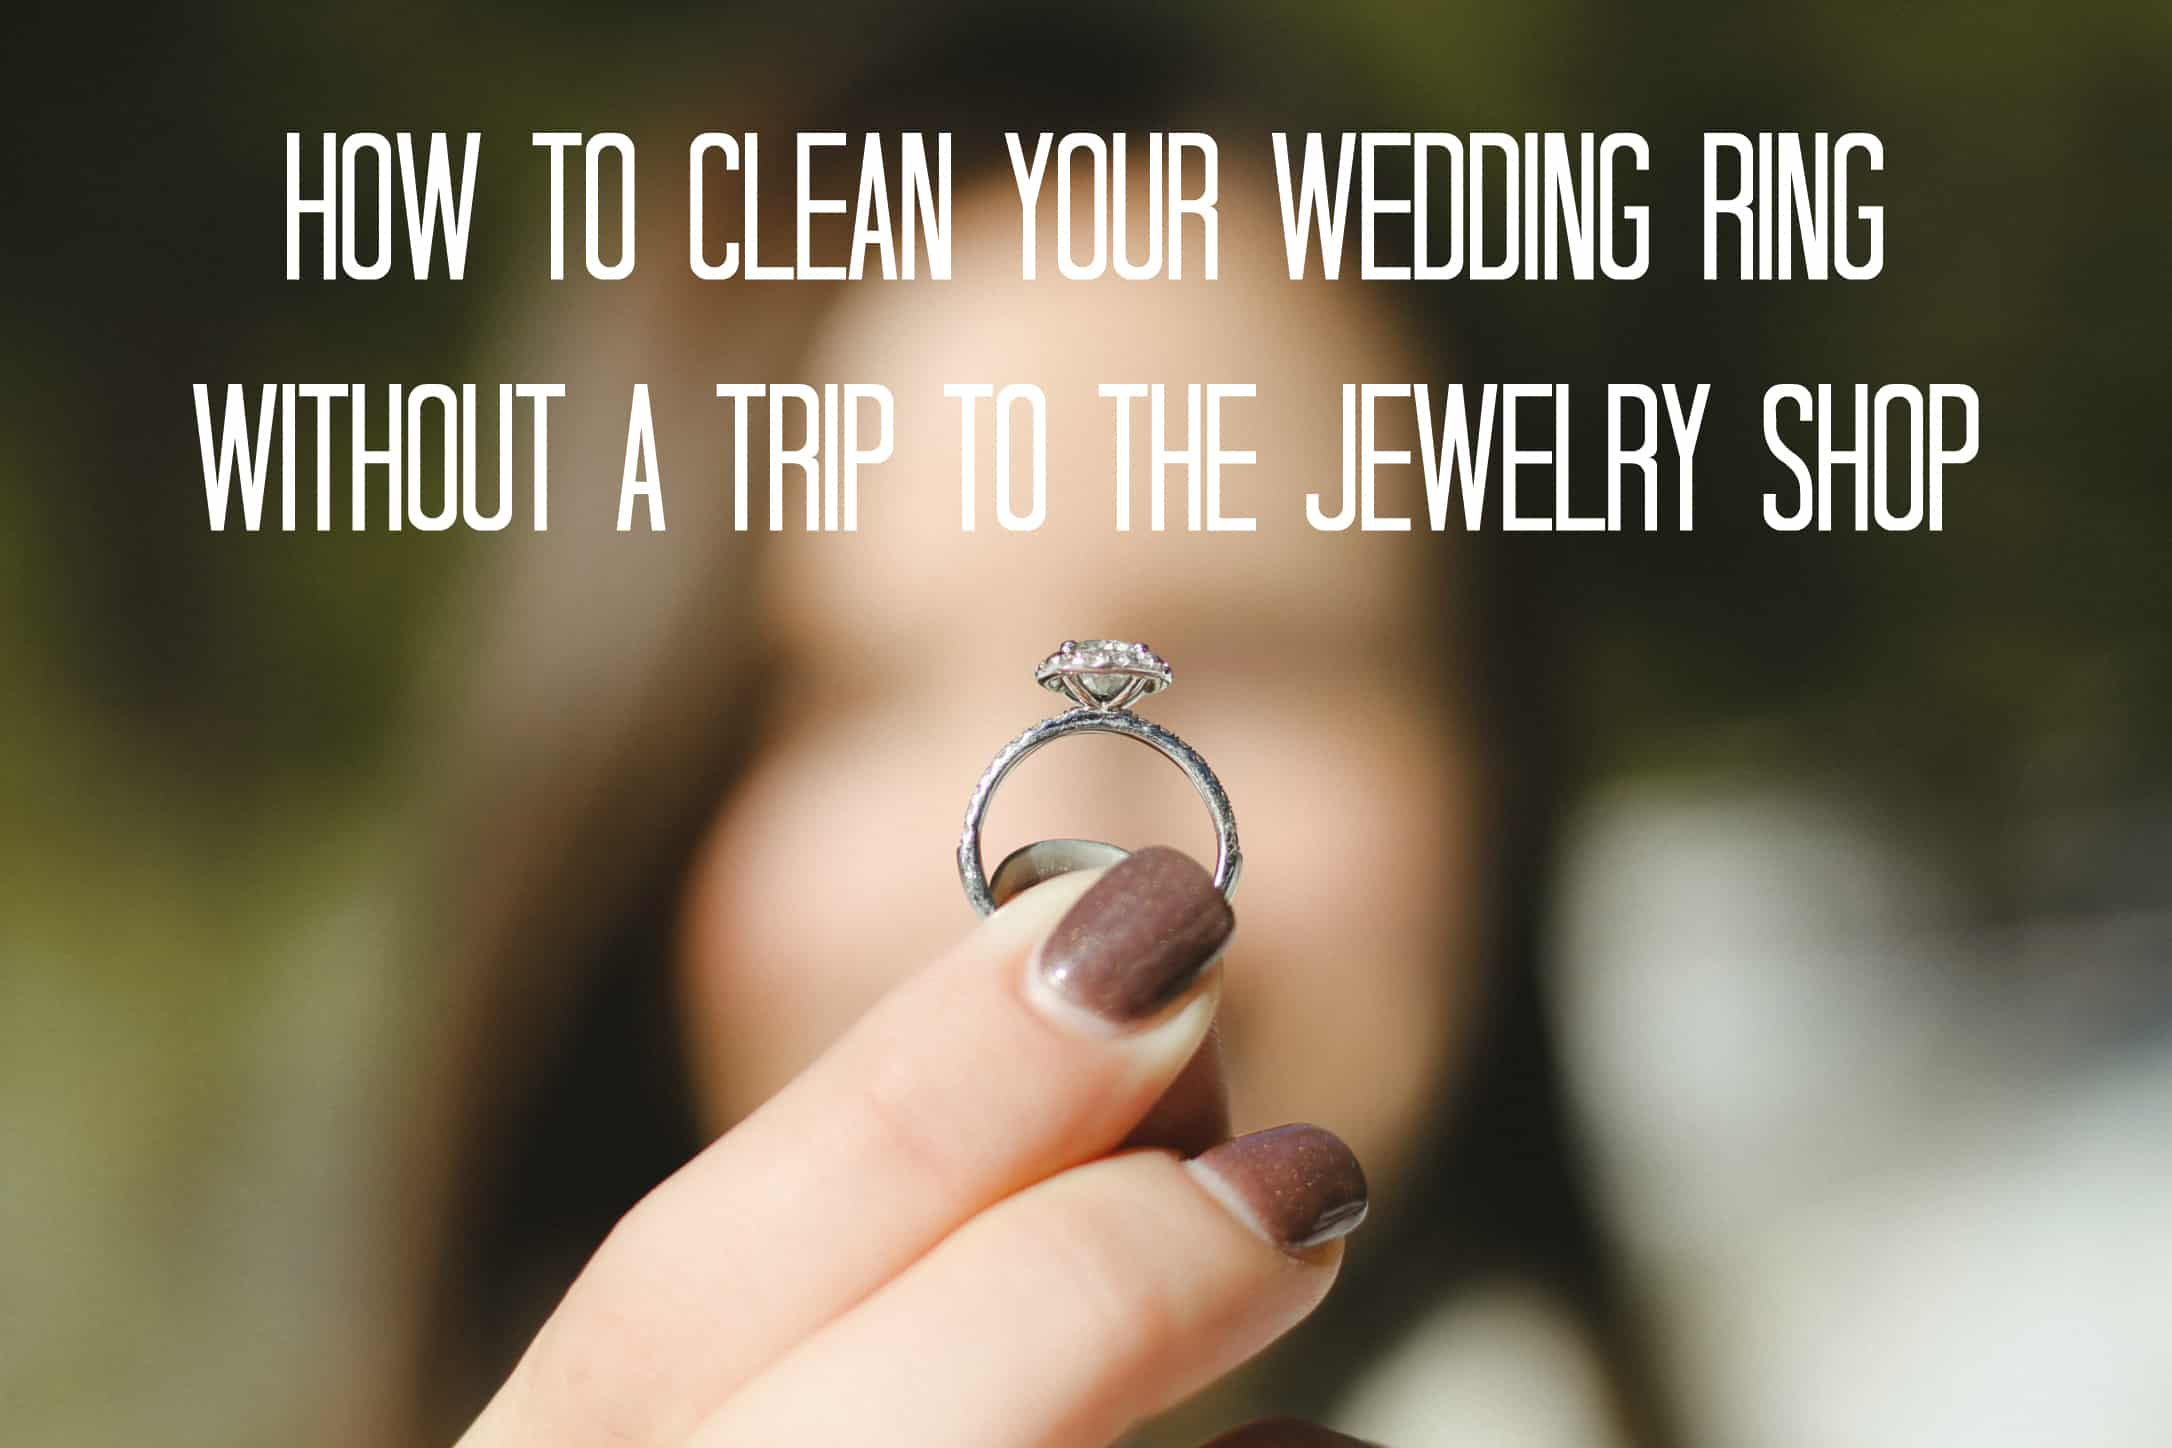 How To Clean Your Wedding Ring Without a Trip to the Jewelry Shop